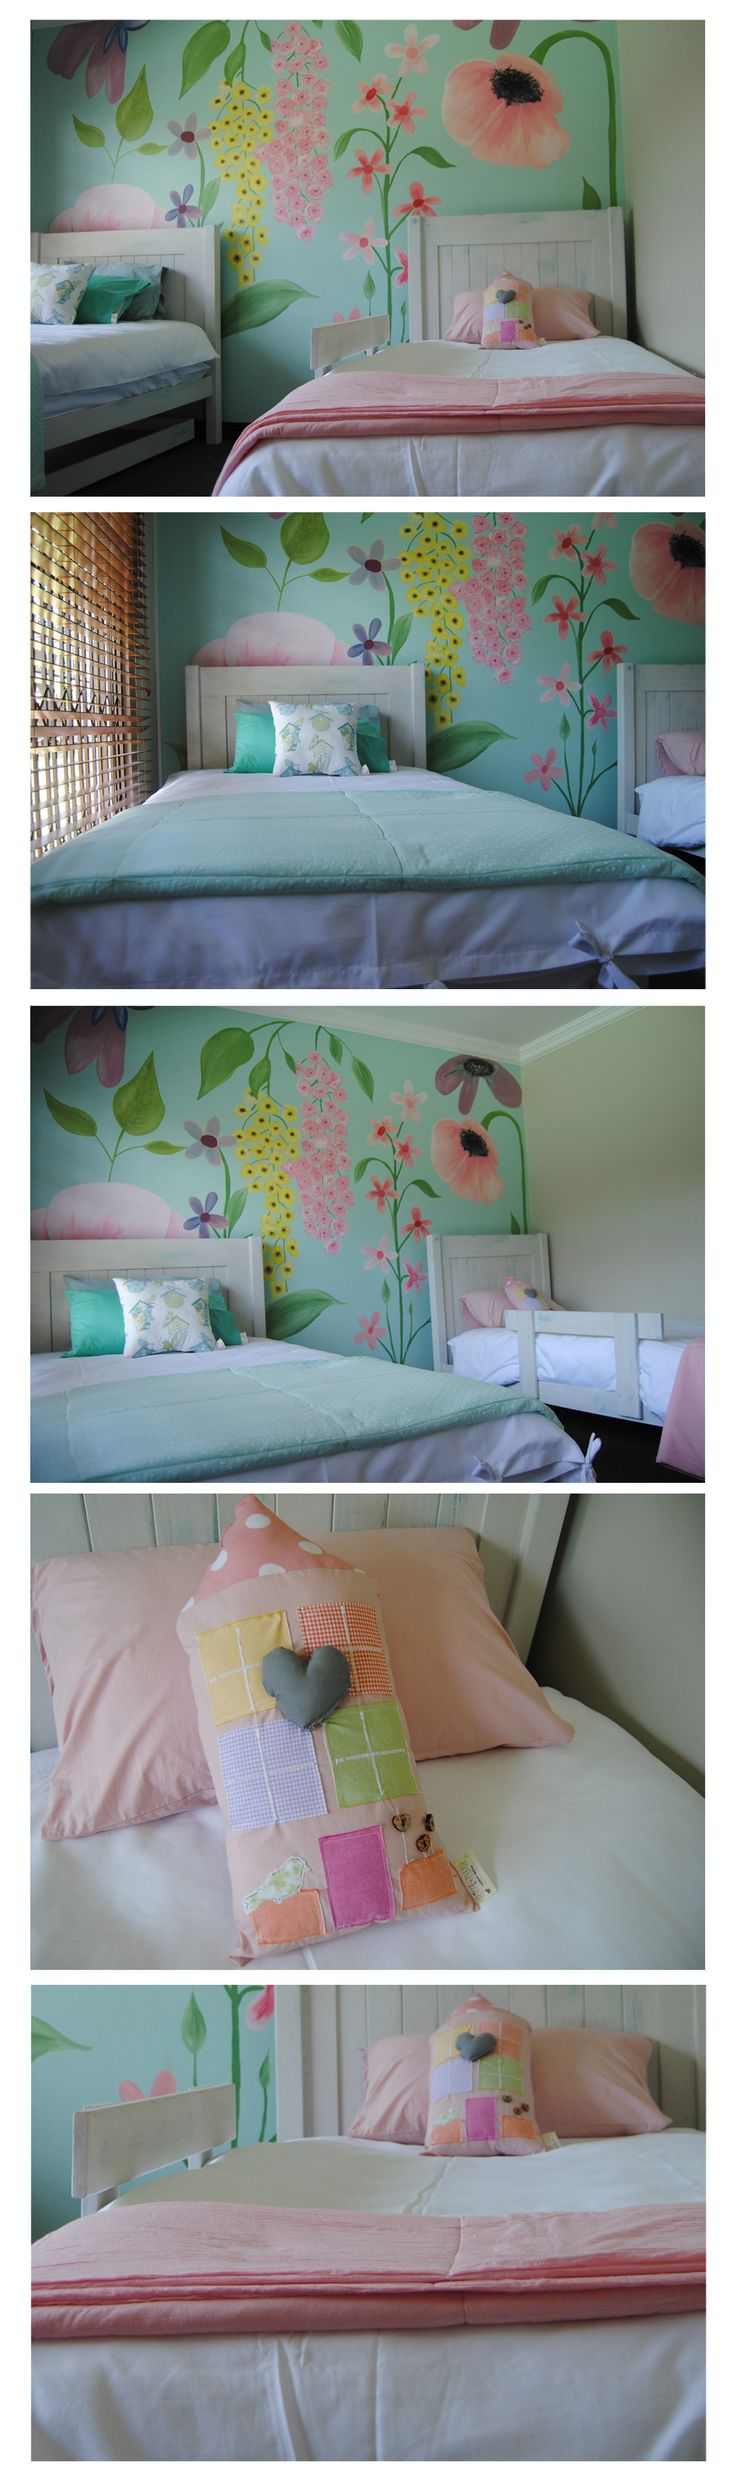 Oogappel Design Studio and our sister company Flippe&Fleur Designer Bedding collaborated to create a beautiful flower themed room makeover for 2 sisters. Credits: Mural by Oogappel Design Studio Credits: Bedding (3/4Duvet Covers and throws) and scatters by Flippe&Fleur Designer Bedding